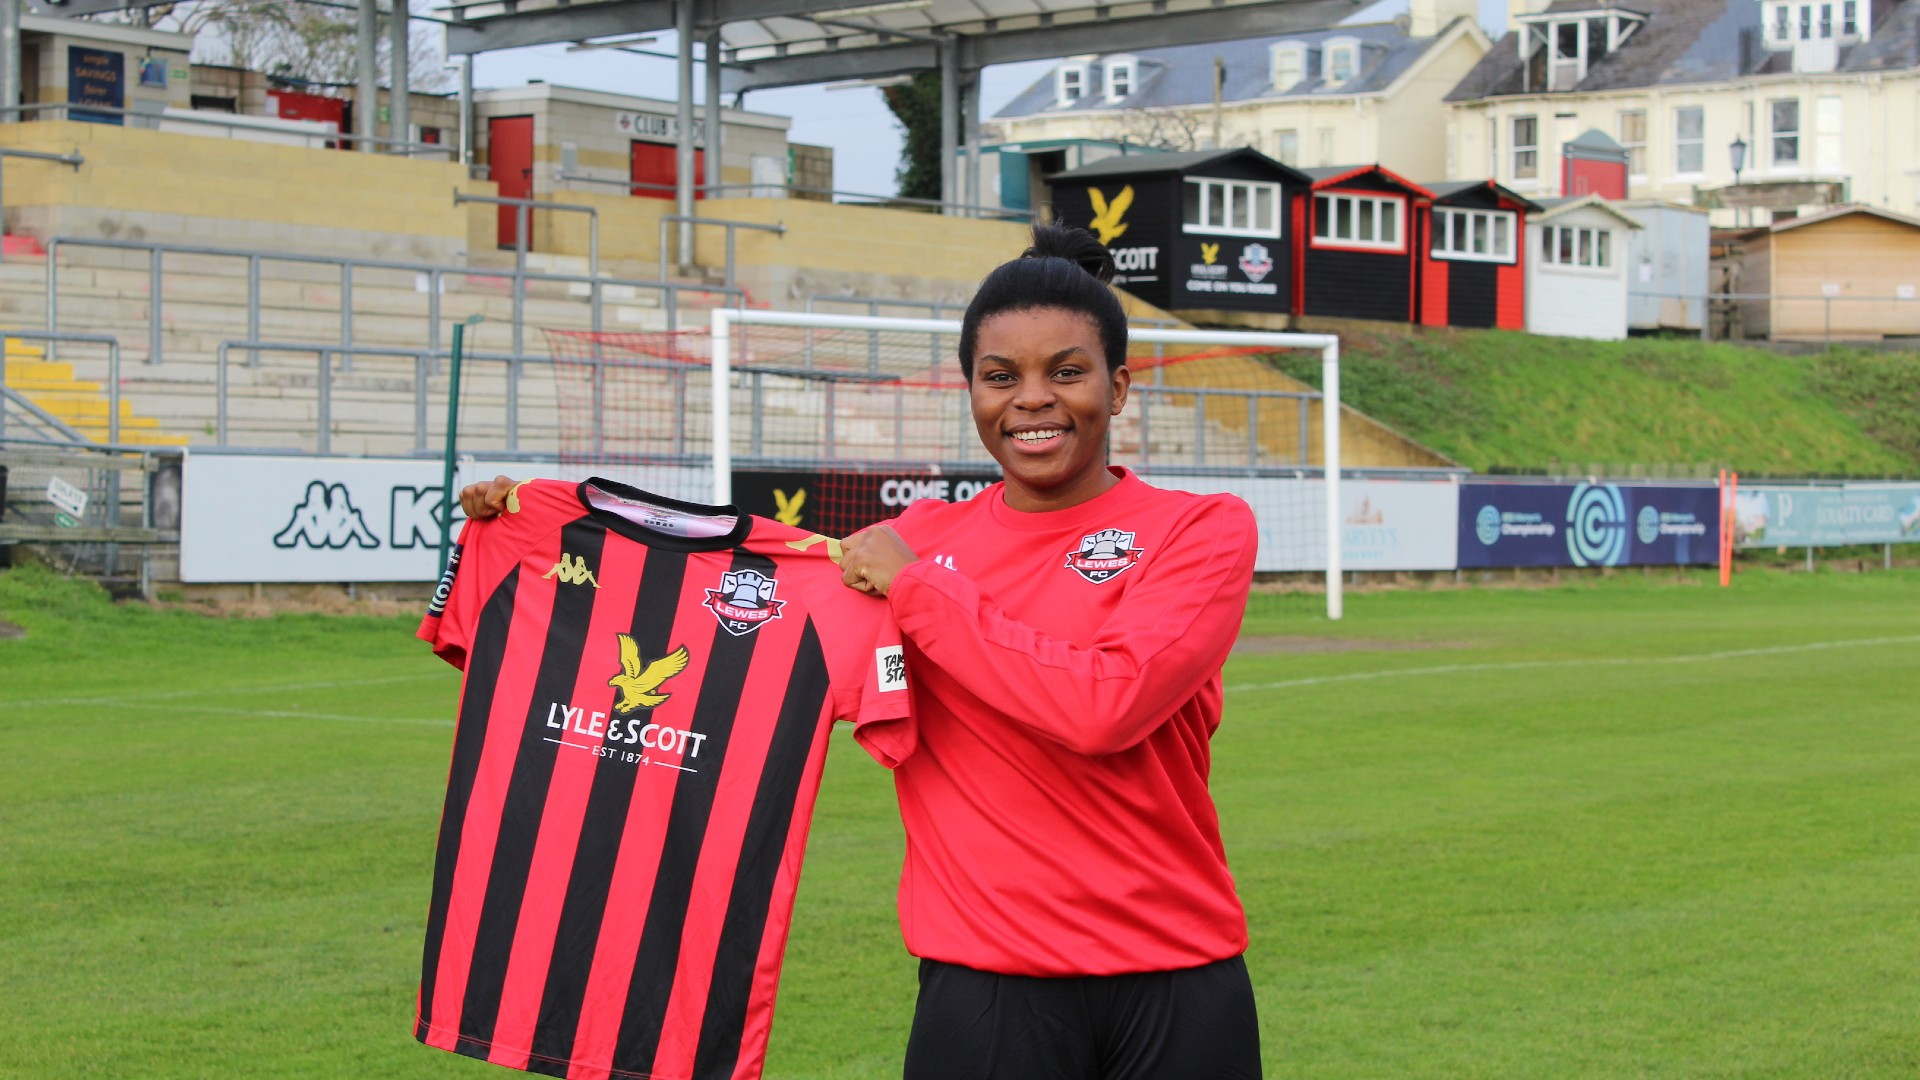 Ini Umotong: Lewes sign Nigeria striker from Vaxjo